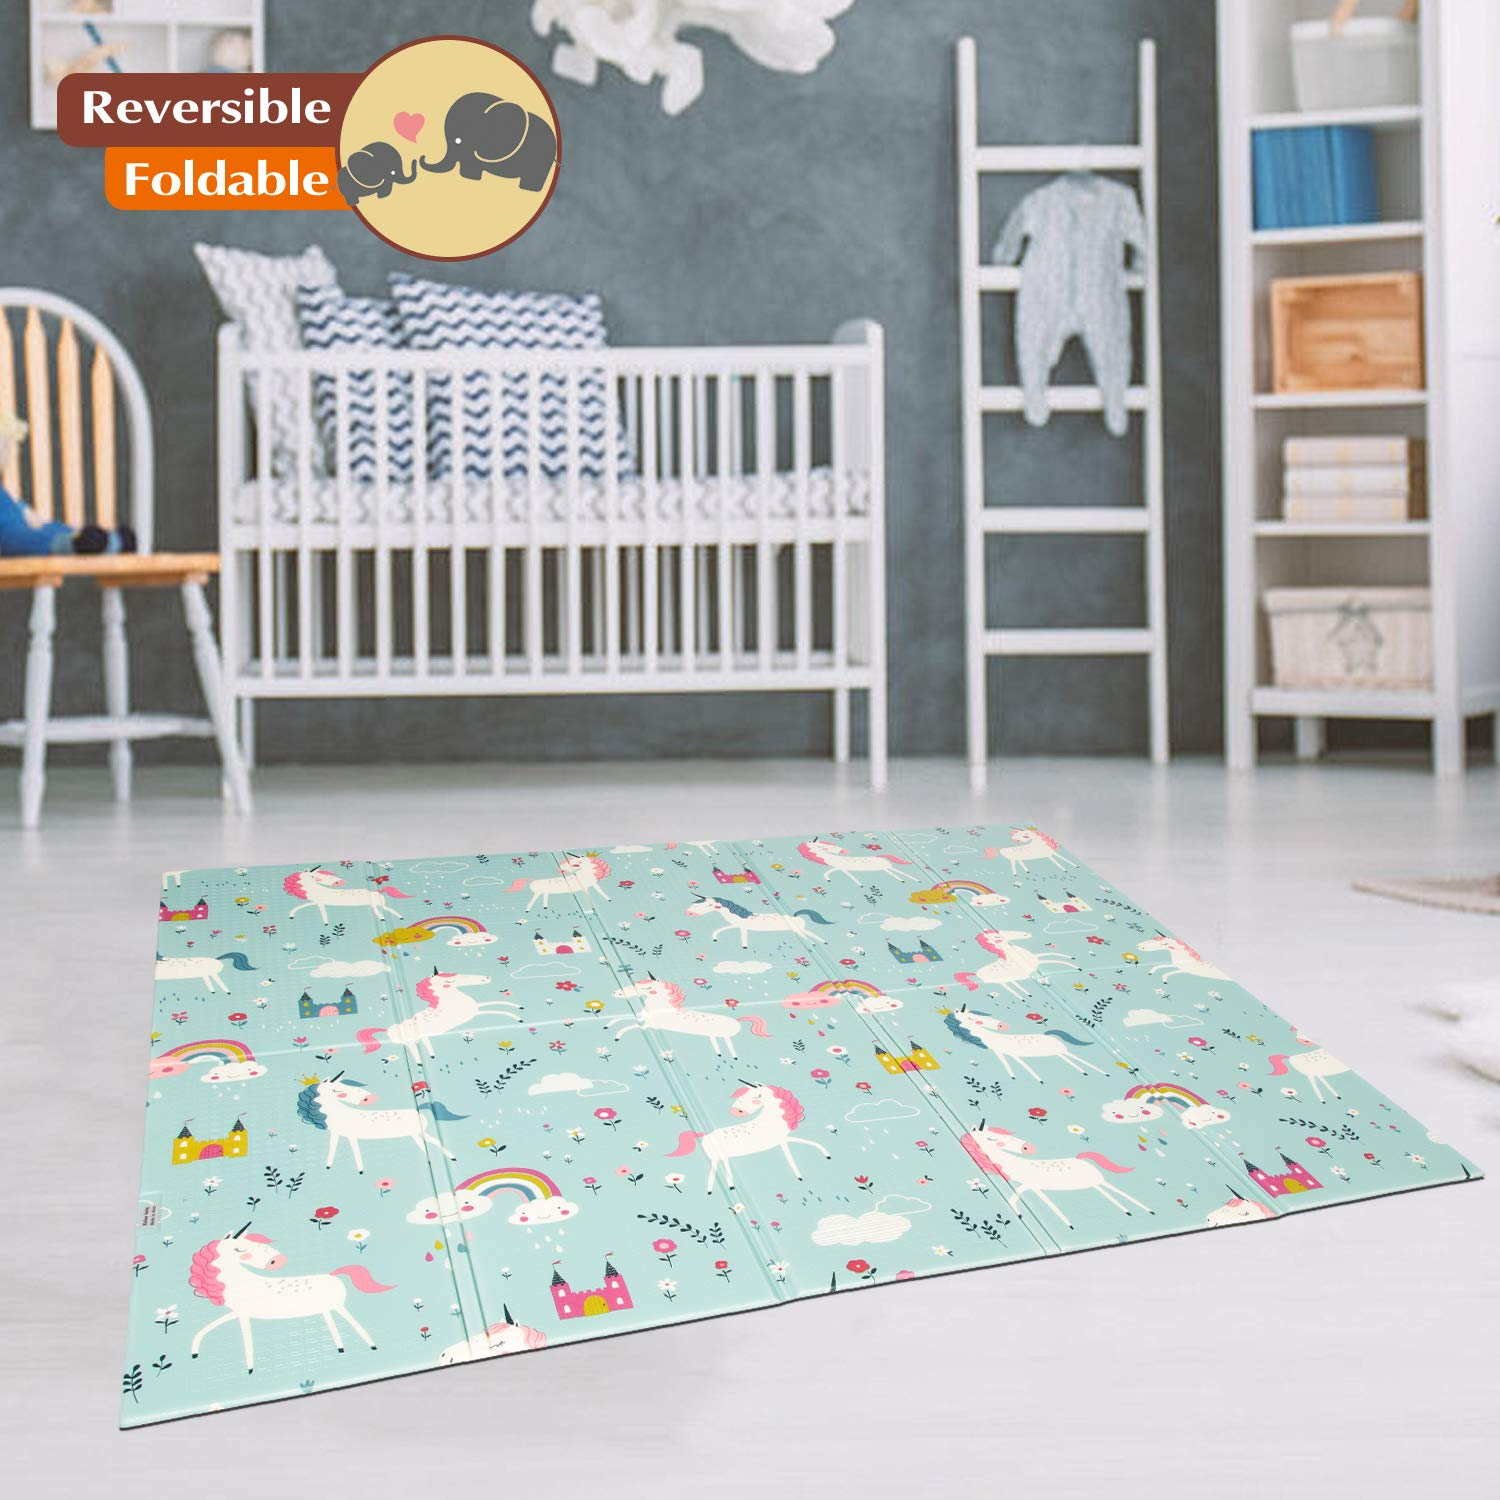 Kinbor Baby Folding Kids Play Mat Reversible XPE Foam Floor Playmat Unisex Playroom and Nursery Mat for Infants Toddlers and Kids 71 59 x 0.4 inch